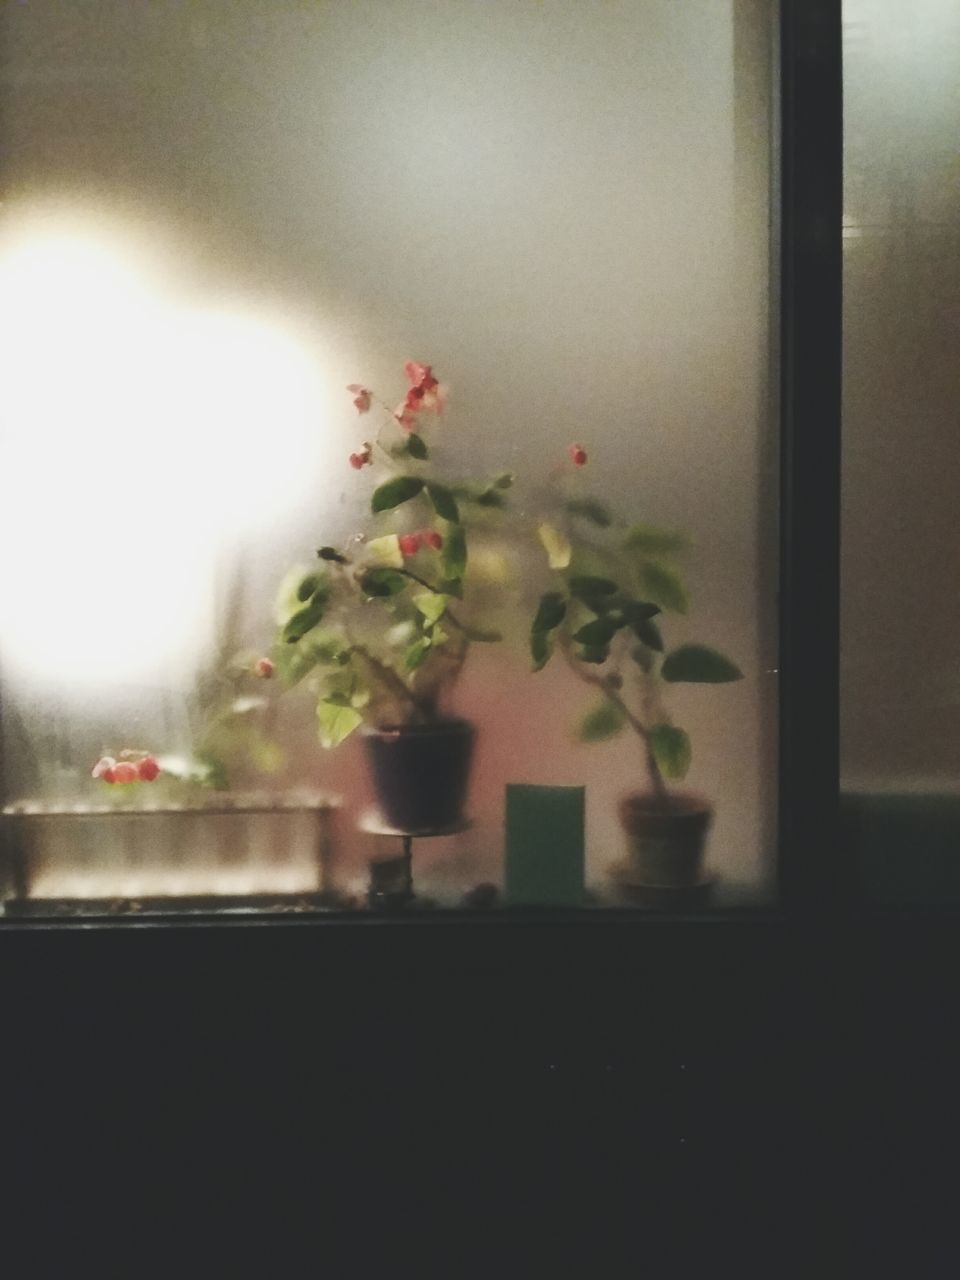 flower, growth, indoors, plant, vase, no people, nature, freshness, close-up, day